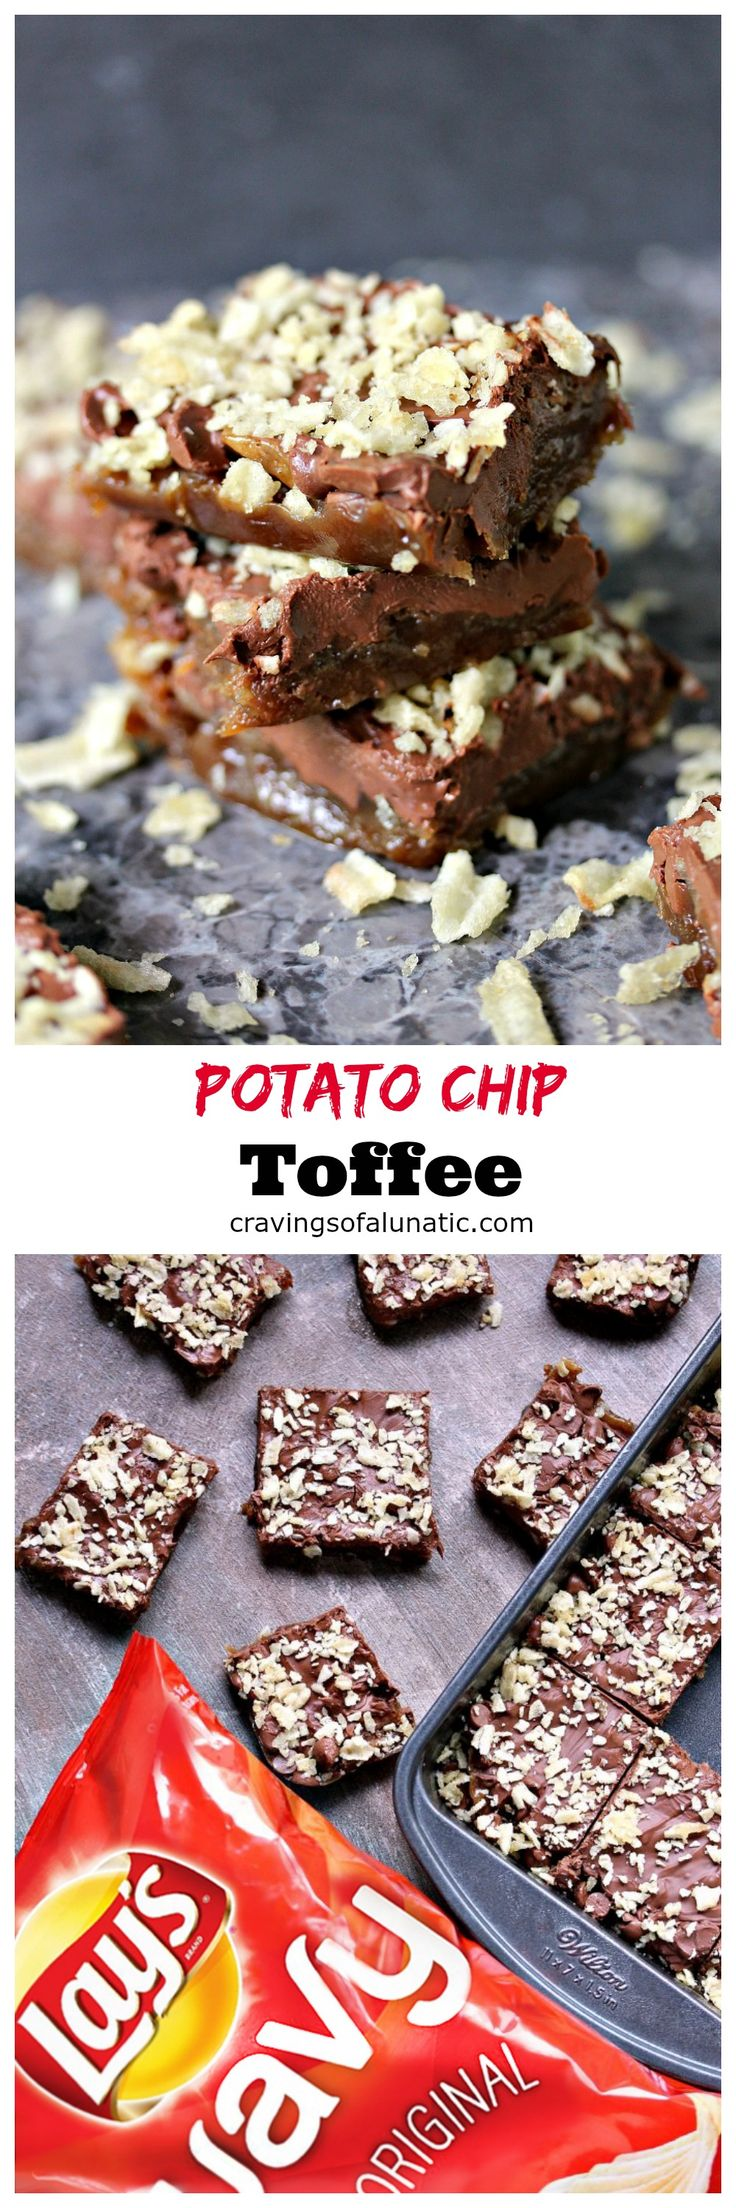 Potato Chip Toffee from cravingsofalunatic.com- This easy recipe for Potato Chip Toffee uses only 5 ingredients and is baked in under 20 minutes. Pop it in the fridge to set up for that perfect crisp toffee snap. Sweet meets salty in the most amazing way! (@CravingsLunatic)